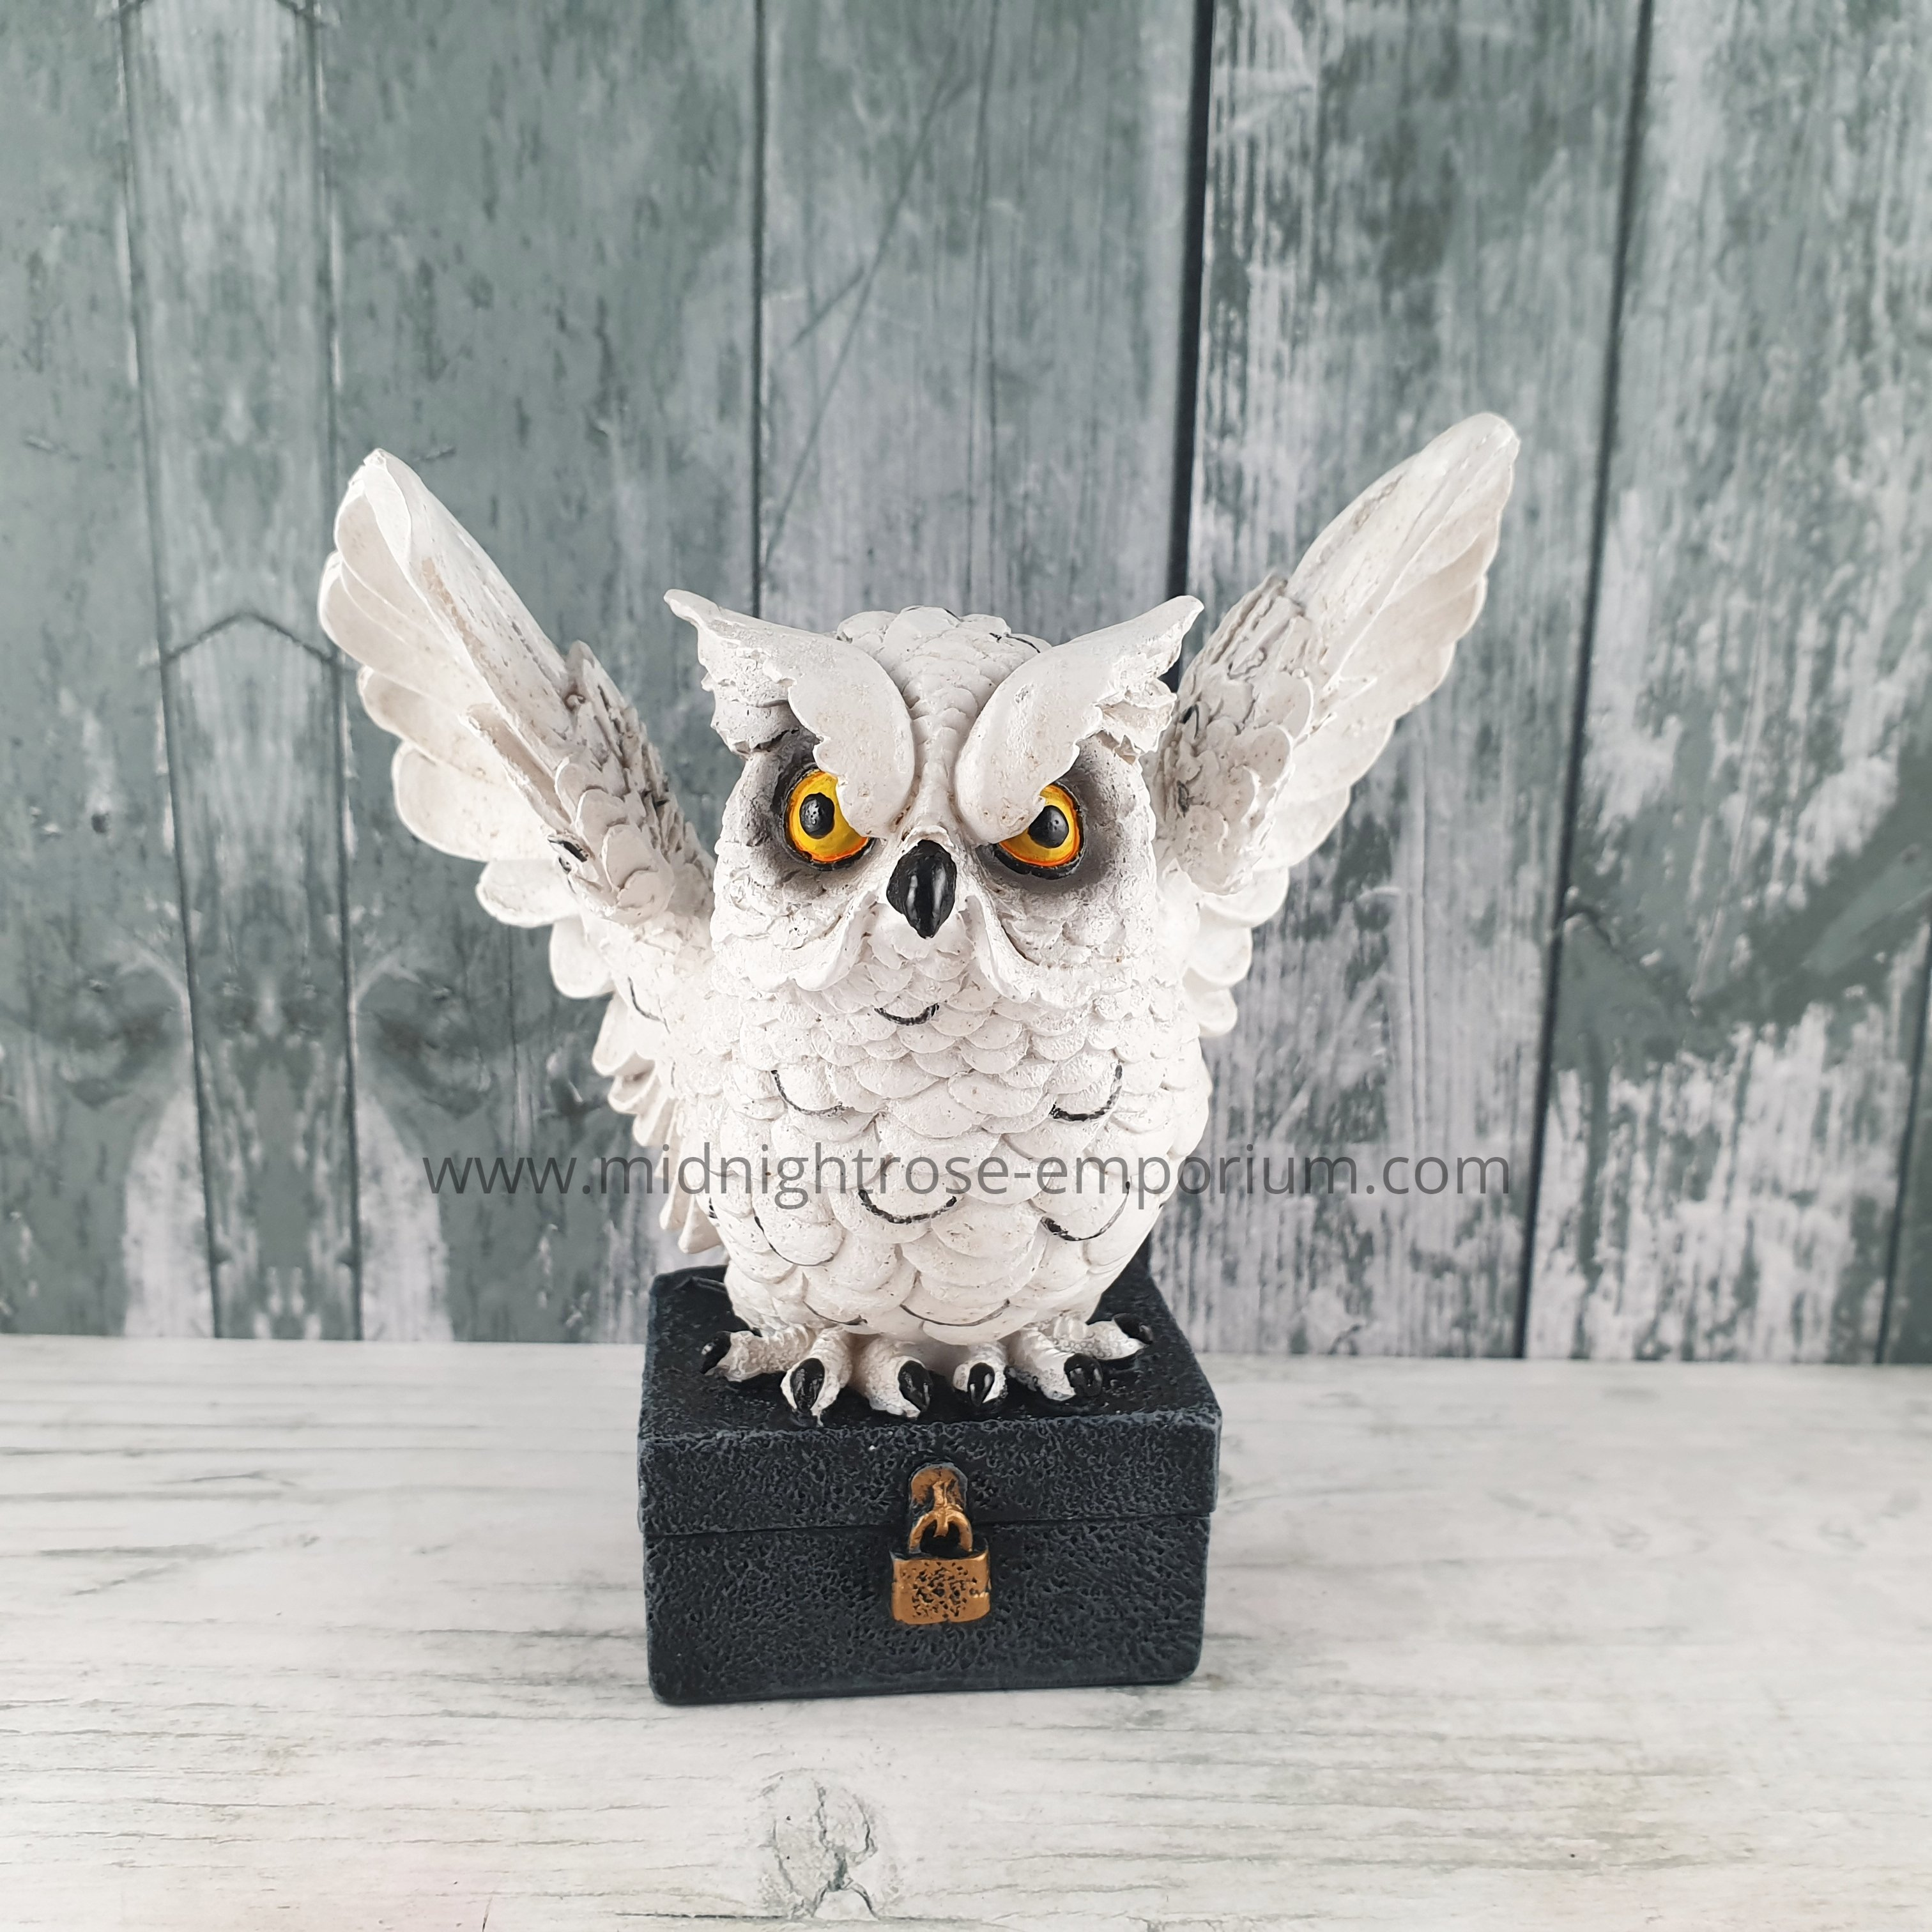 'Archimedes' Owl on Chest Ornament